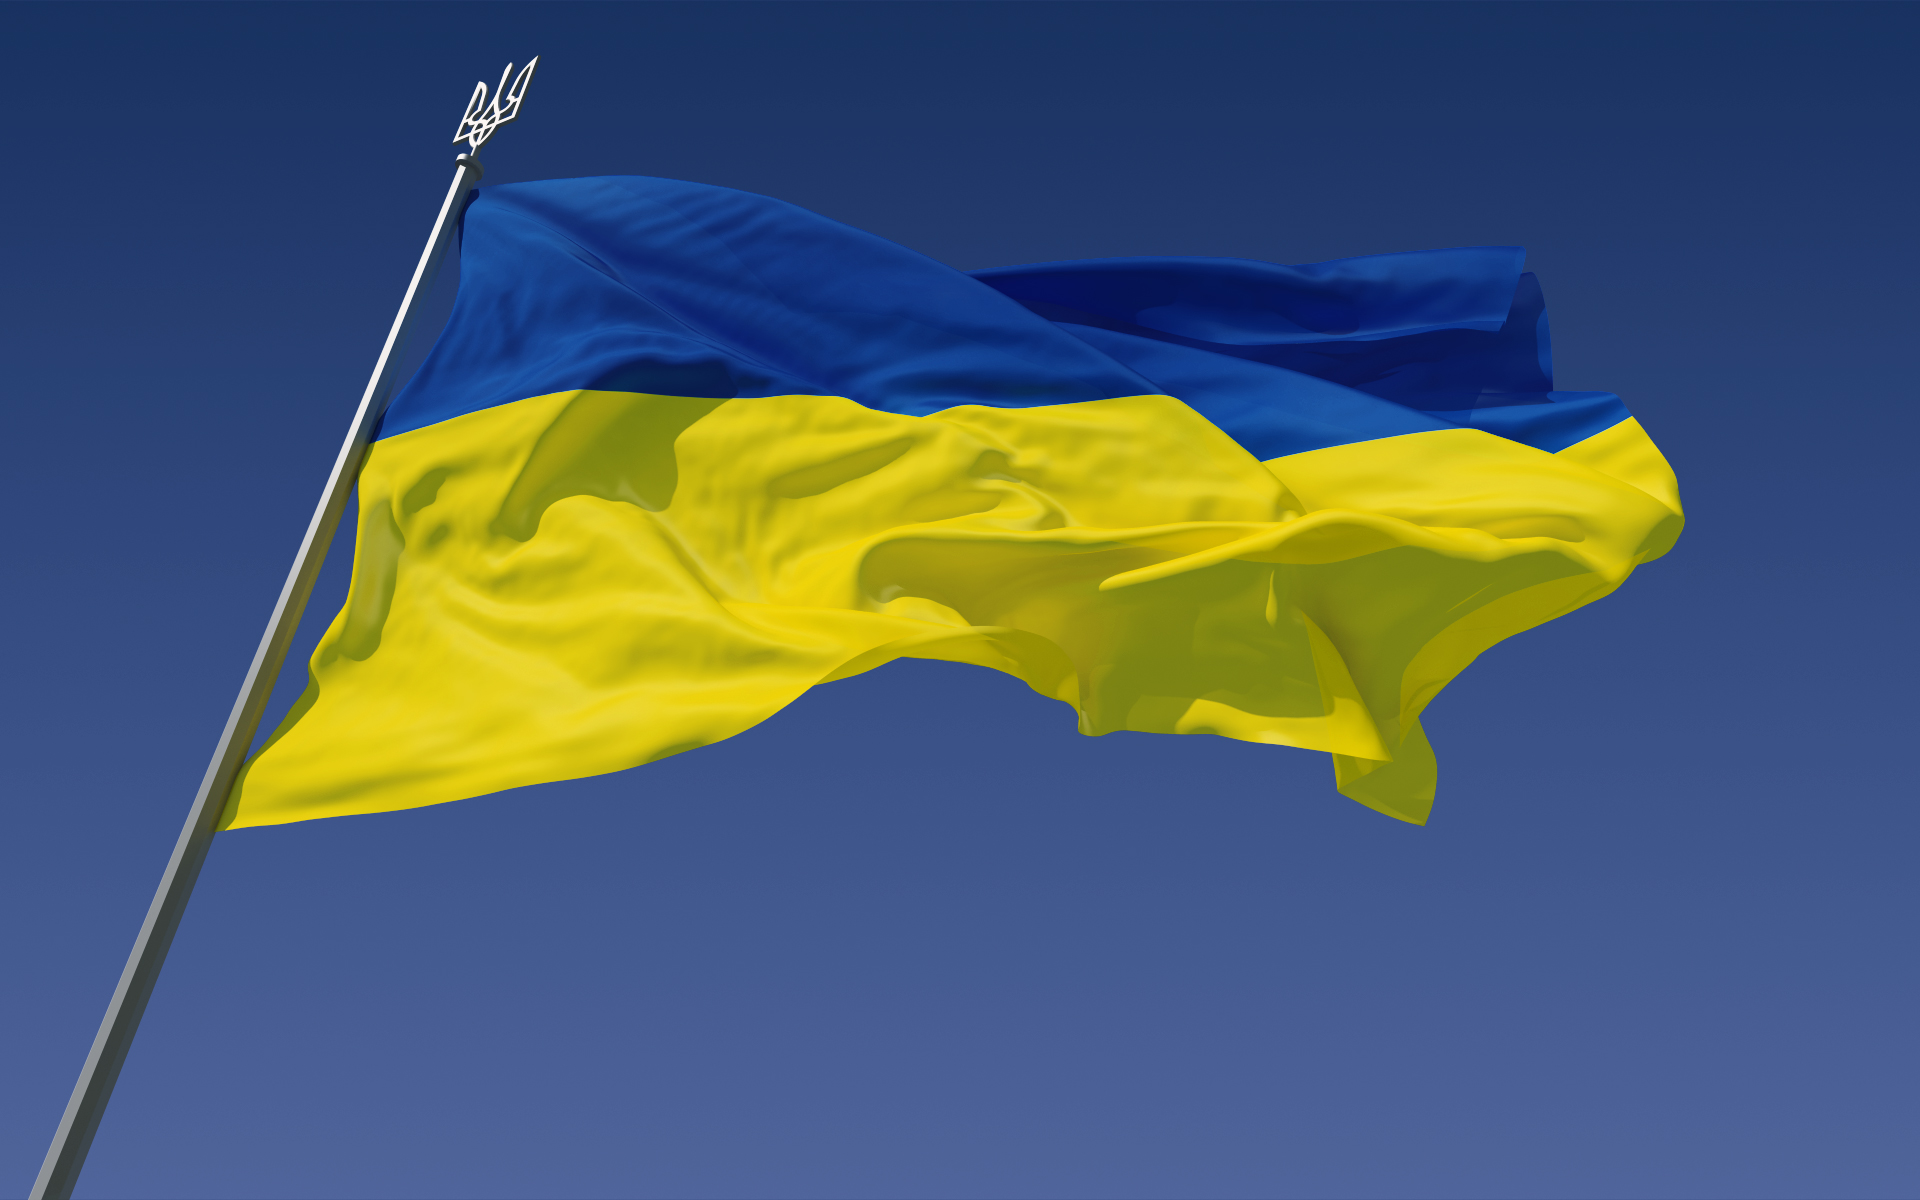 https://i0.wp.com/upload.wikimedia.org/wikipedia/commons/5/5e/Flag_of_Ukraine.jpg